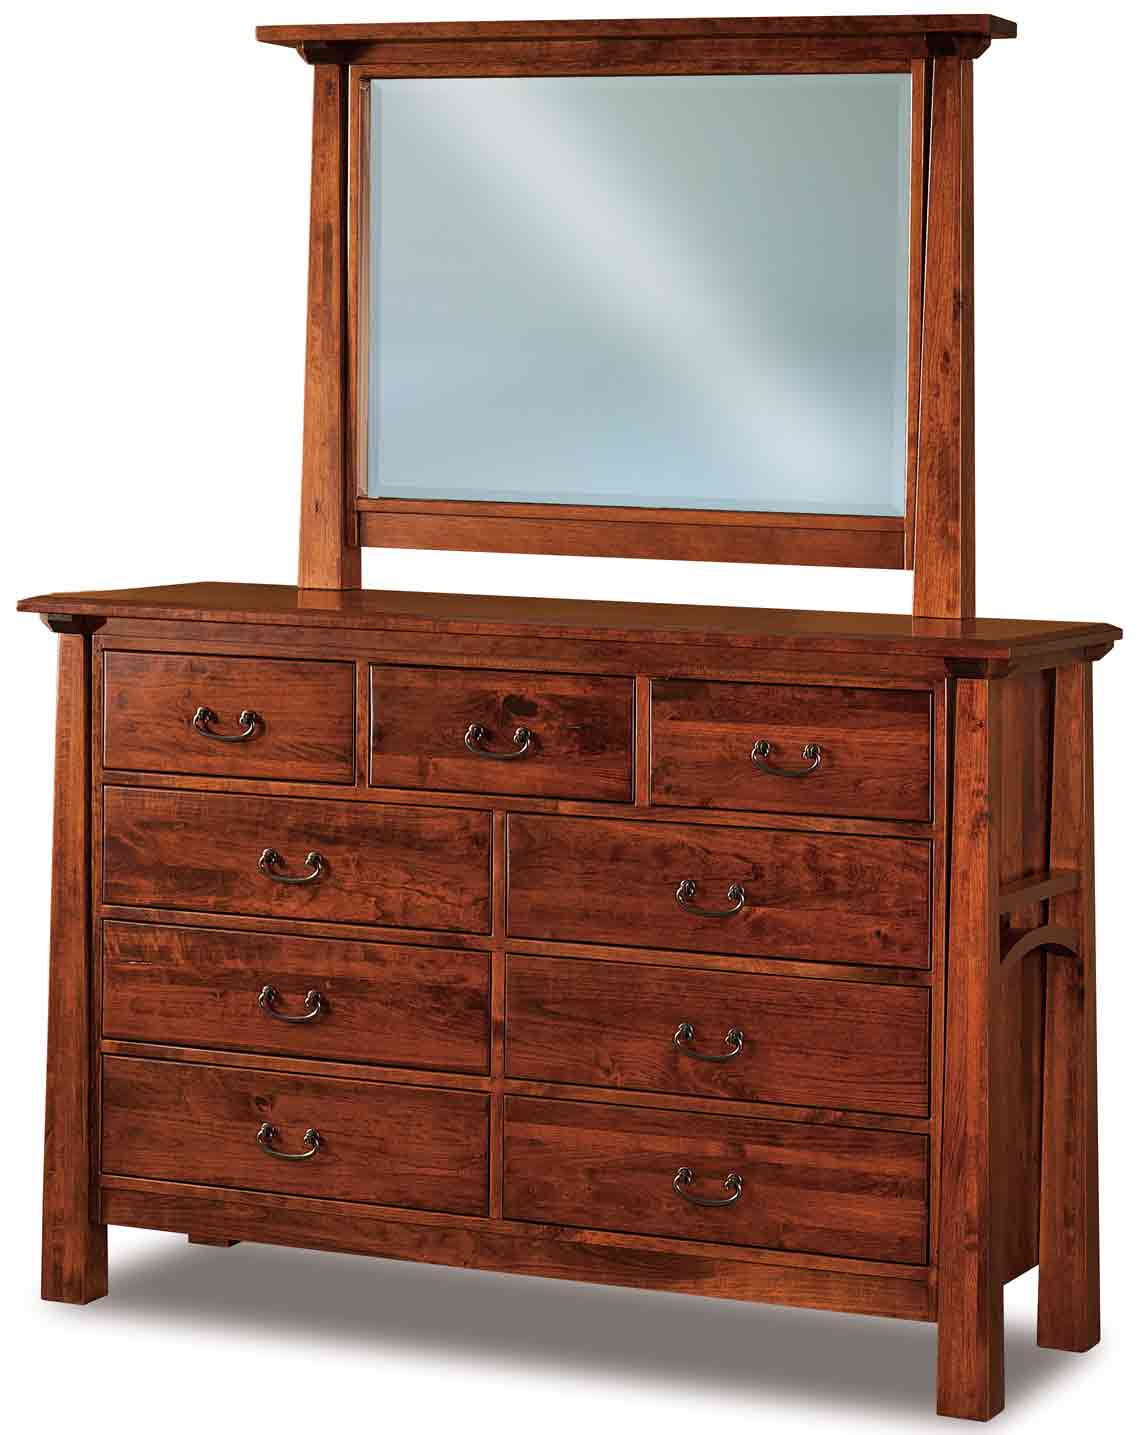 Artesa 9 Drawer Dresser 058 w additional mirror